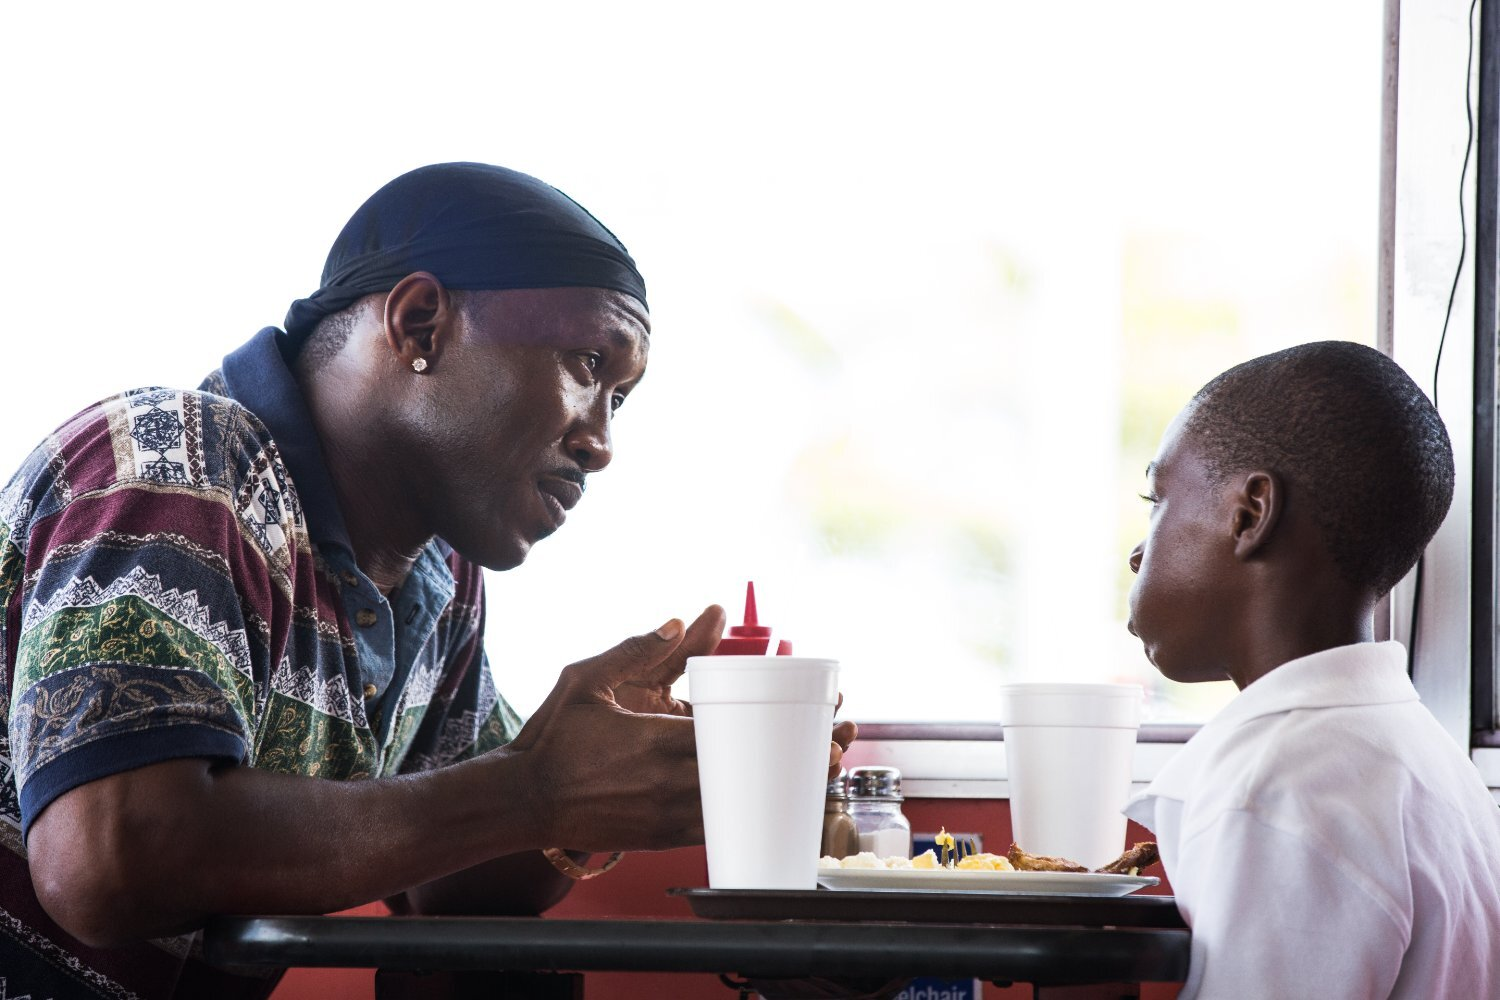 Moonlight exudes power and soul in equal measure. It is dark & brooding but also heartwarming and tender, not to mention heart-breaking! In 3 distinct chapters or acts, Moonlight traces the life of Chiron through all its painful & distinguishing manifestations. Whilst evidently much more than a gay-awakening film, this central theme allows for the exploration into the vulnerability of being. A magnetic story told with mesmerisingly inspired cinematography. Moonlight = cinematic poetry that we looooove!